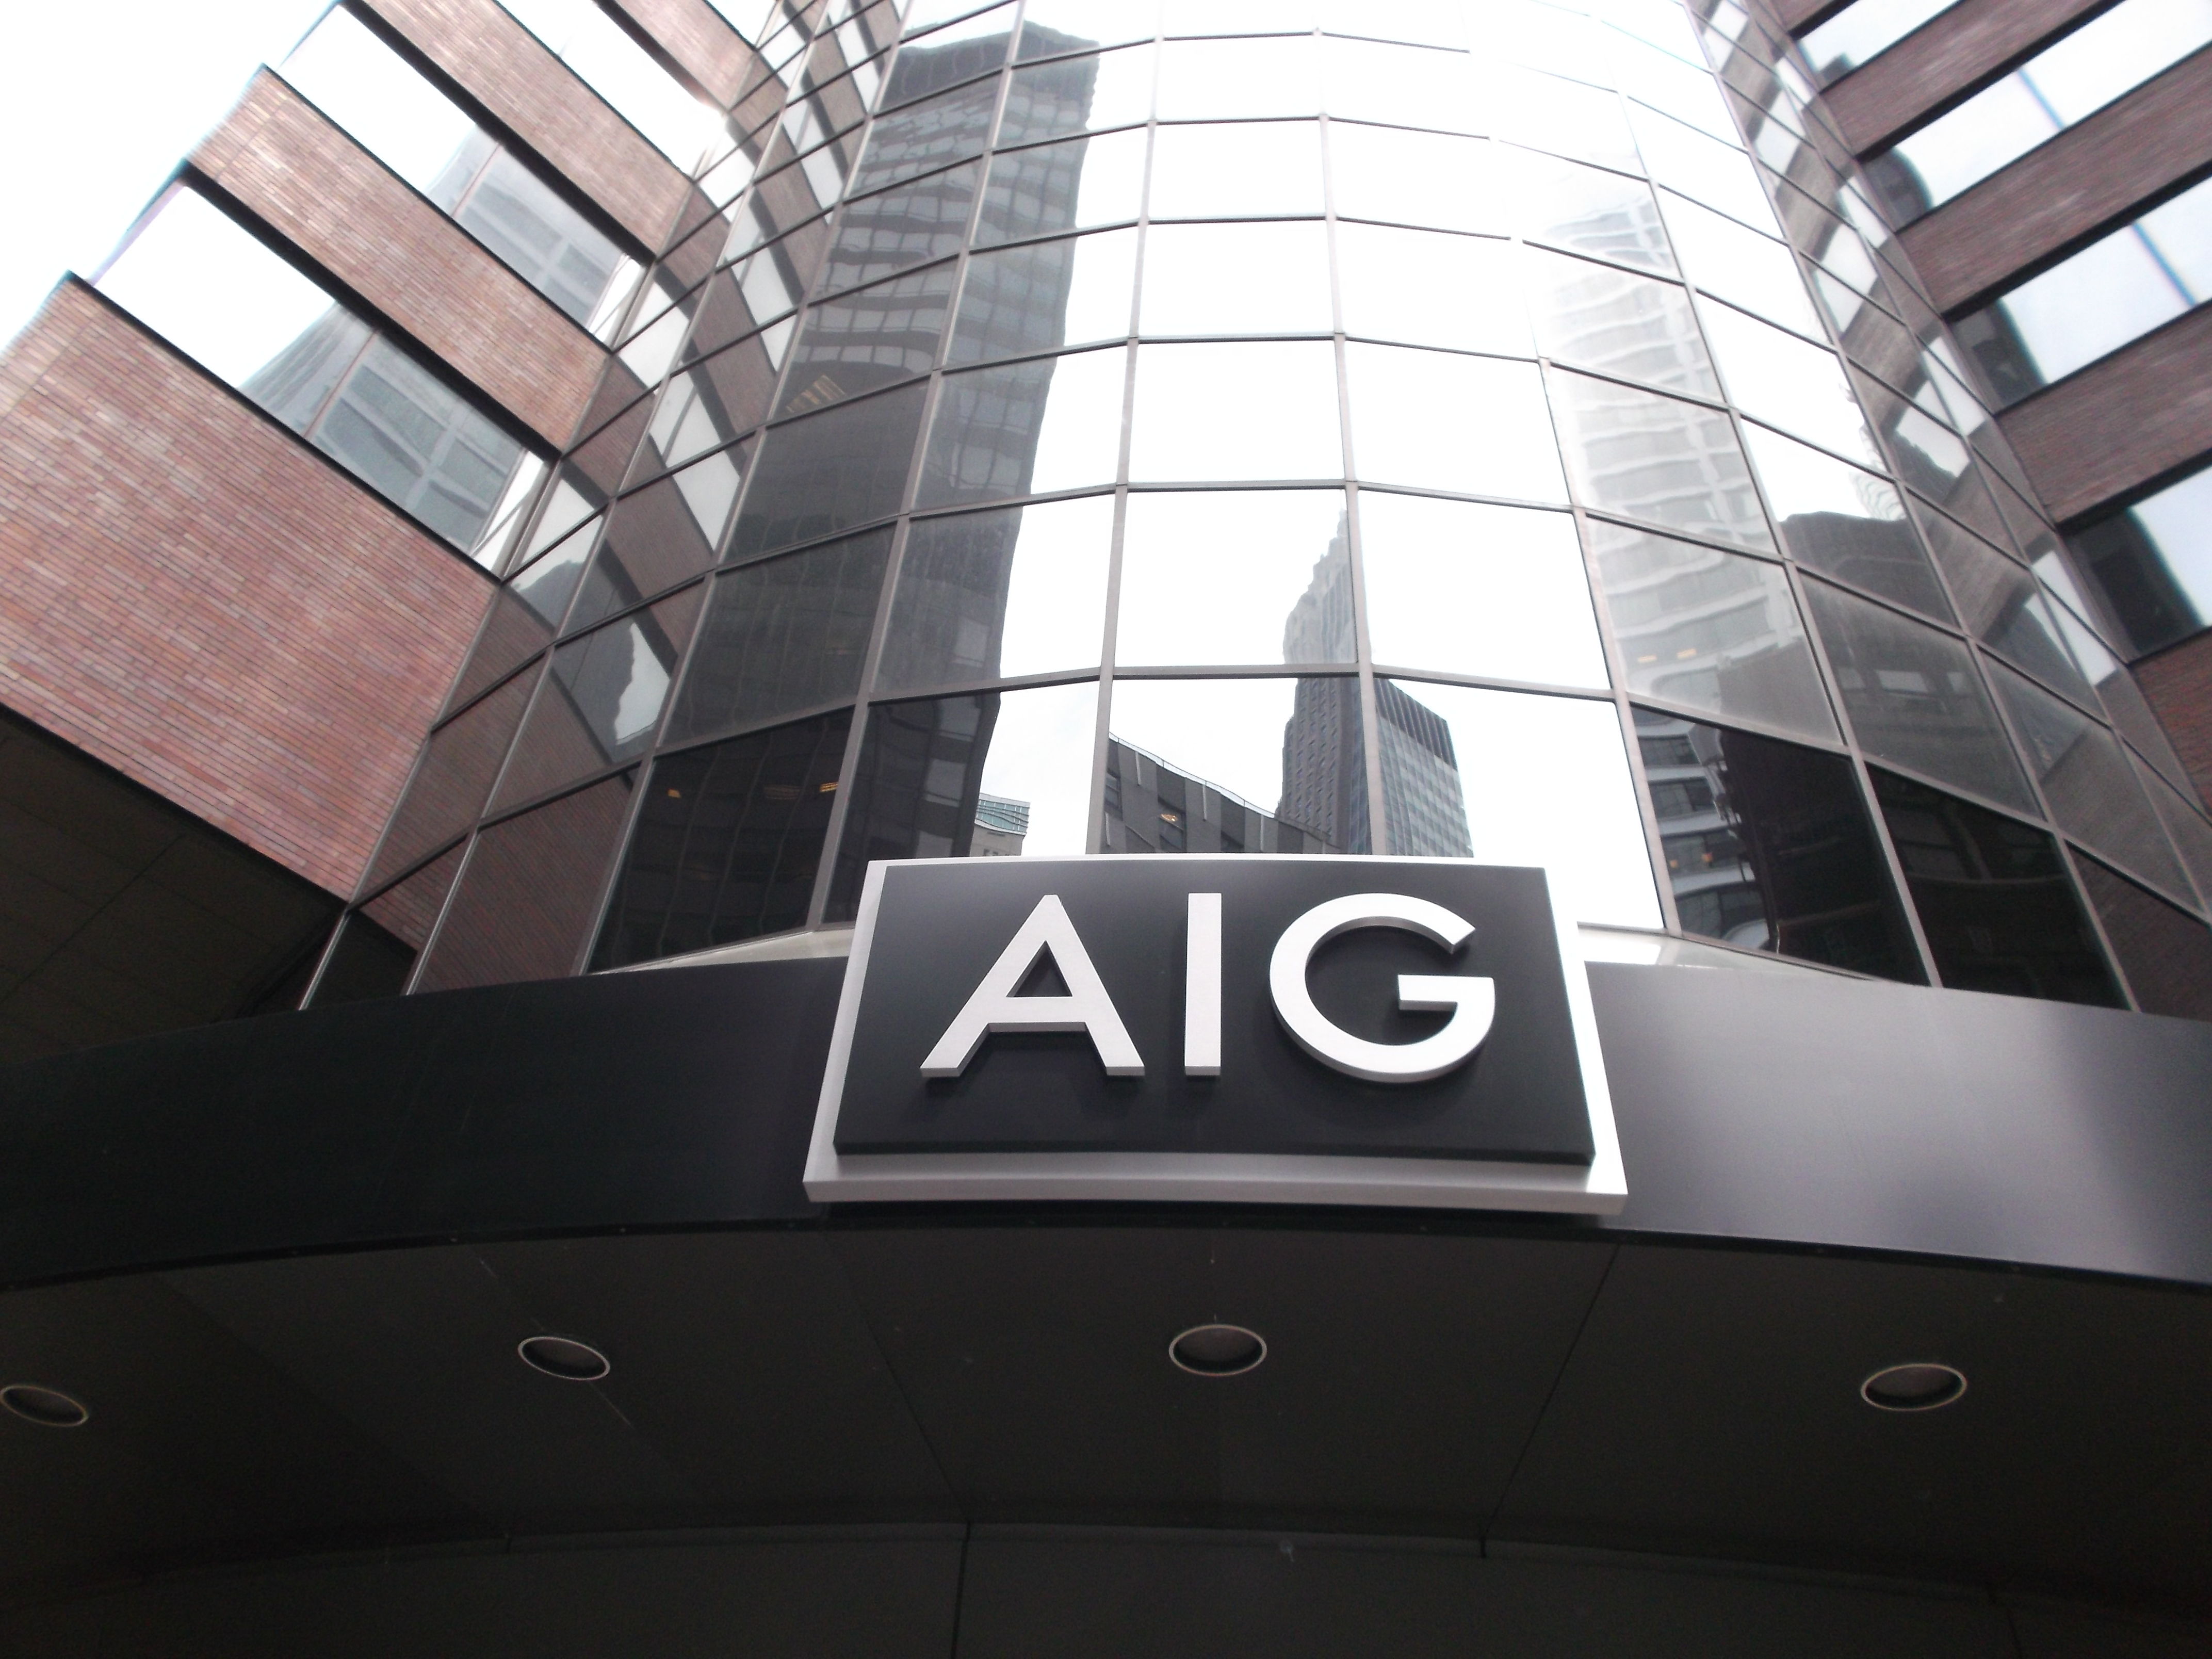 history of tata aig Tata aig life insurance company limited was licensed to operate in india on   aig history dates back to 1919, when cornelius vander starr established an.